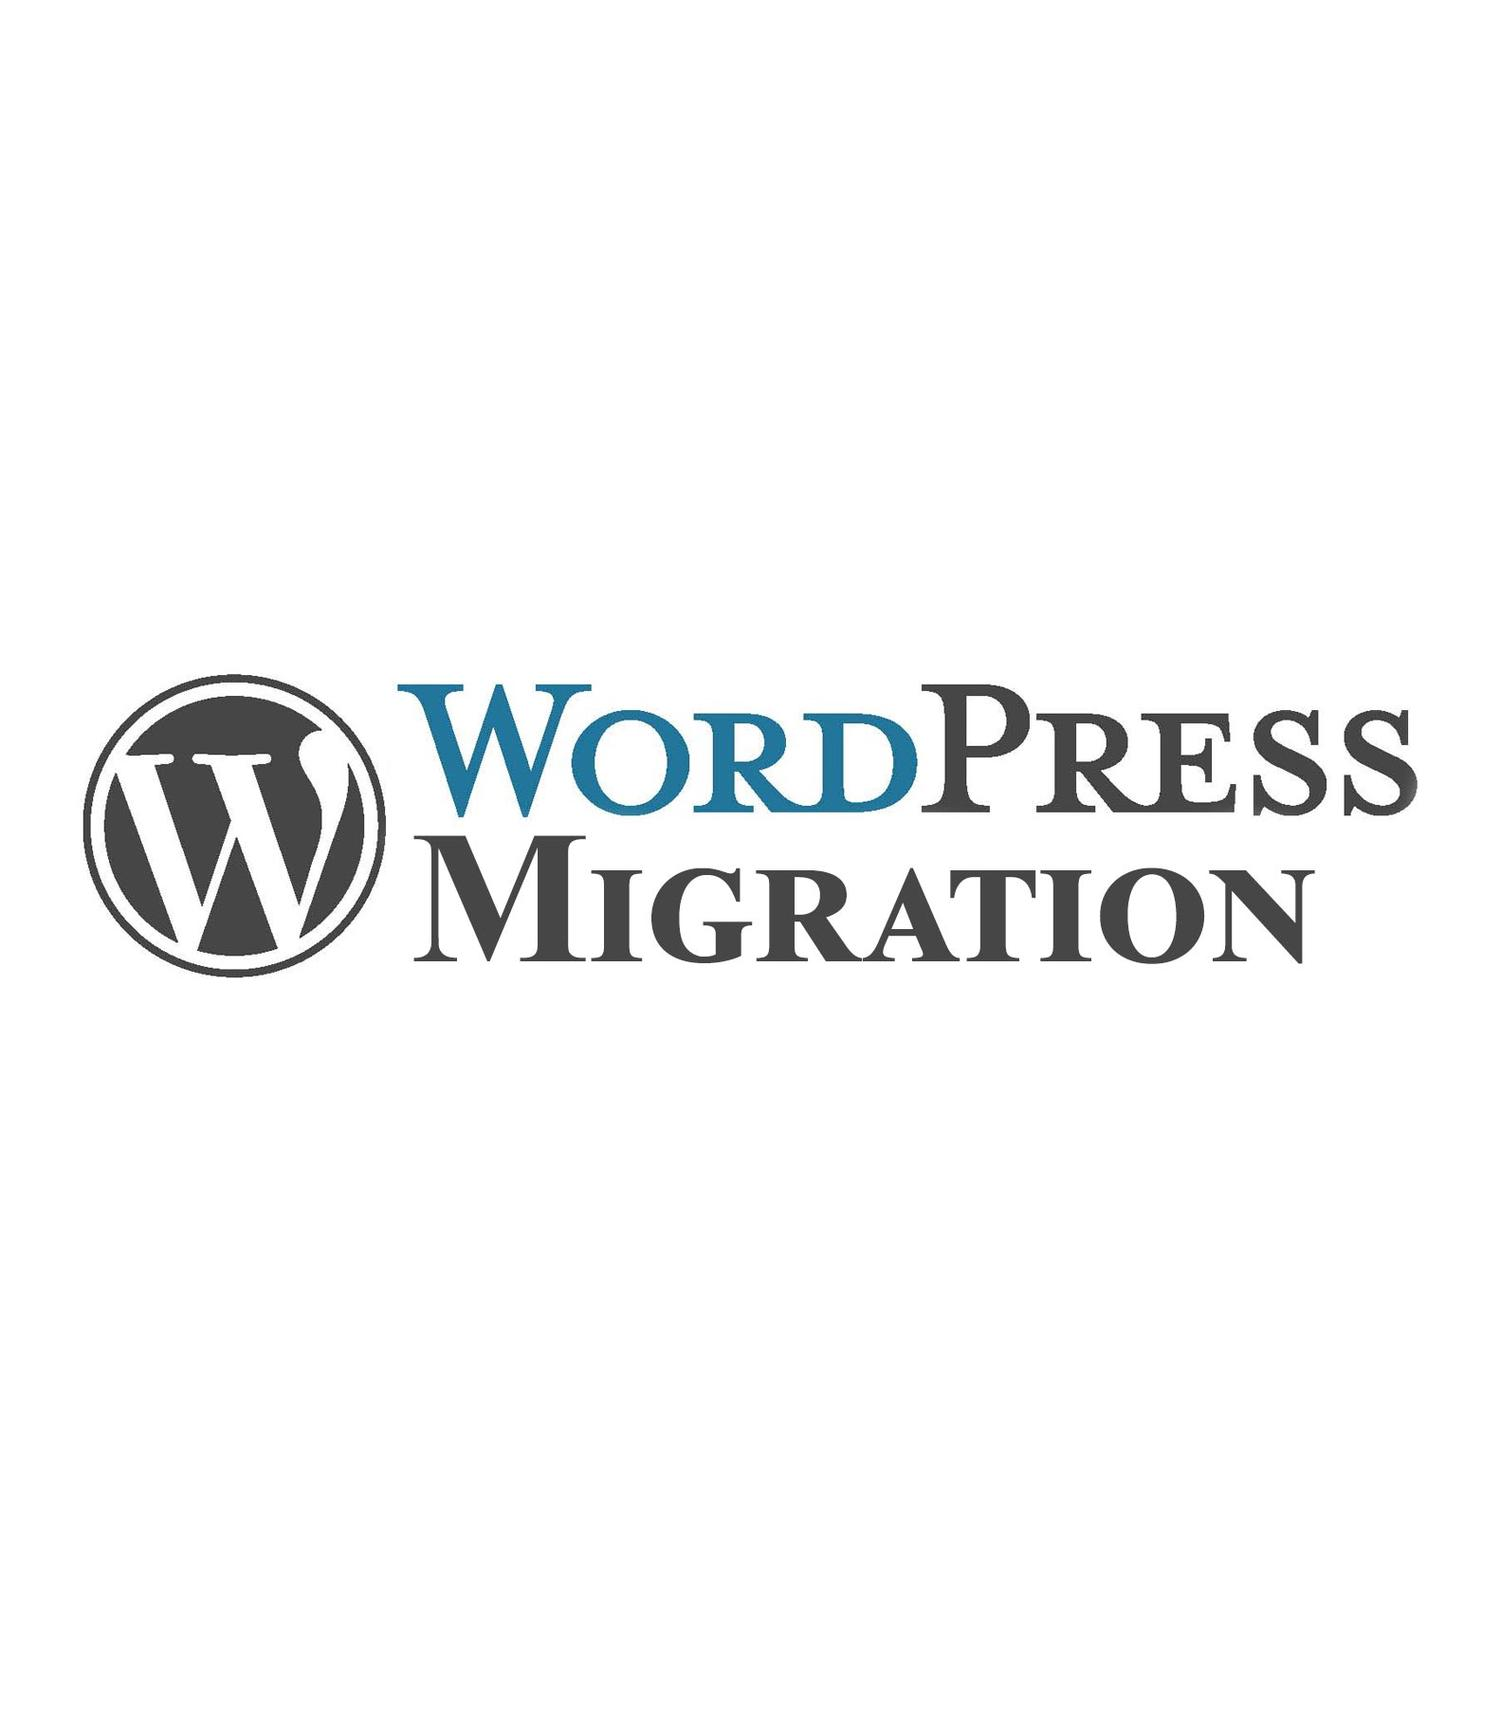 WordPress Migration by vinuknarayanan - 39240